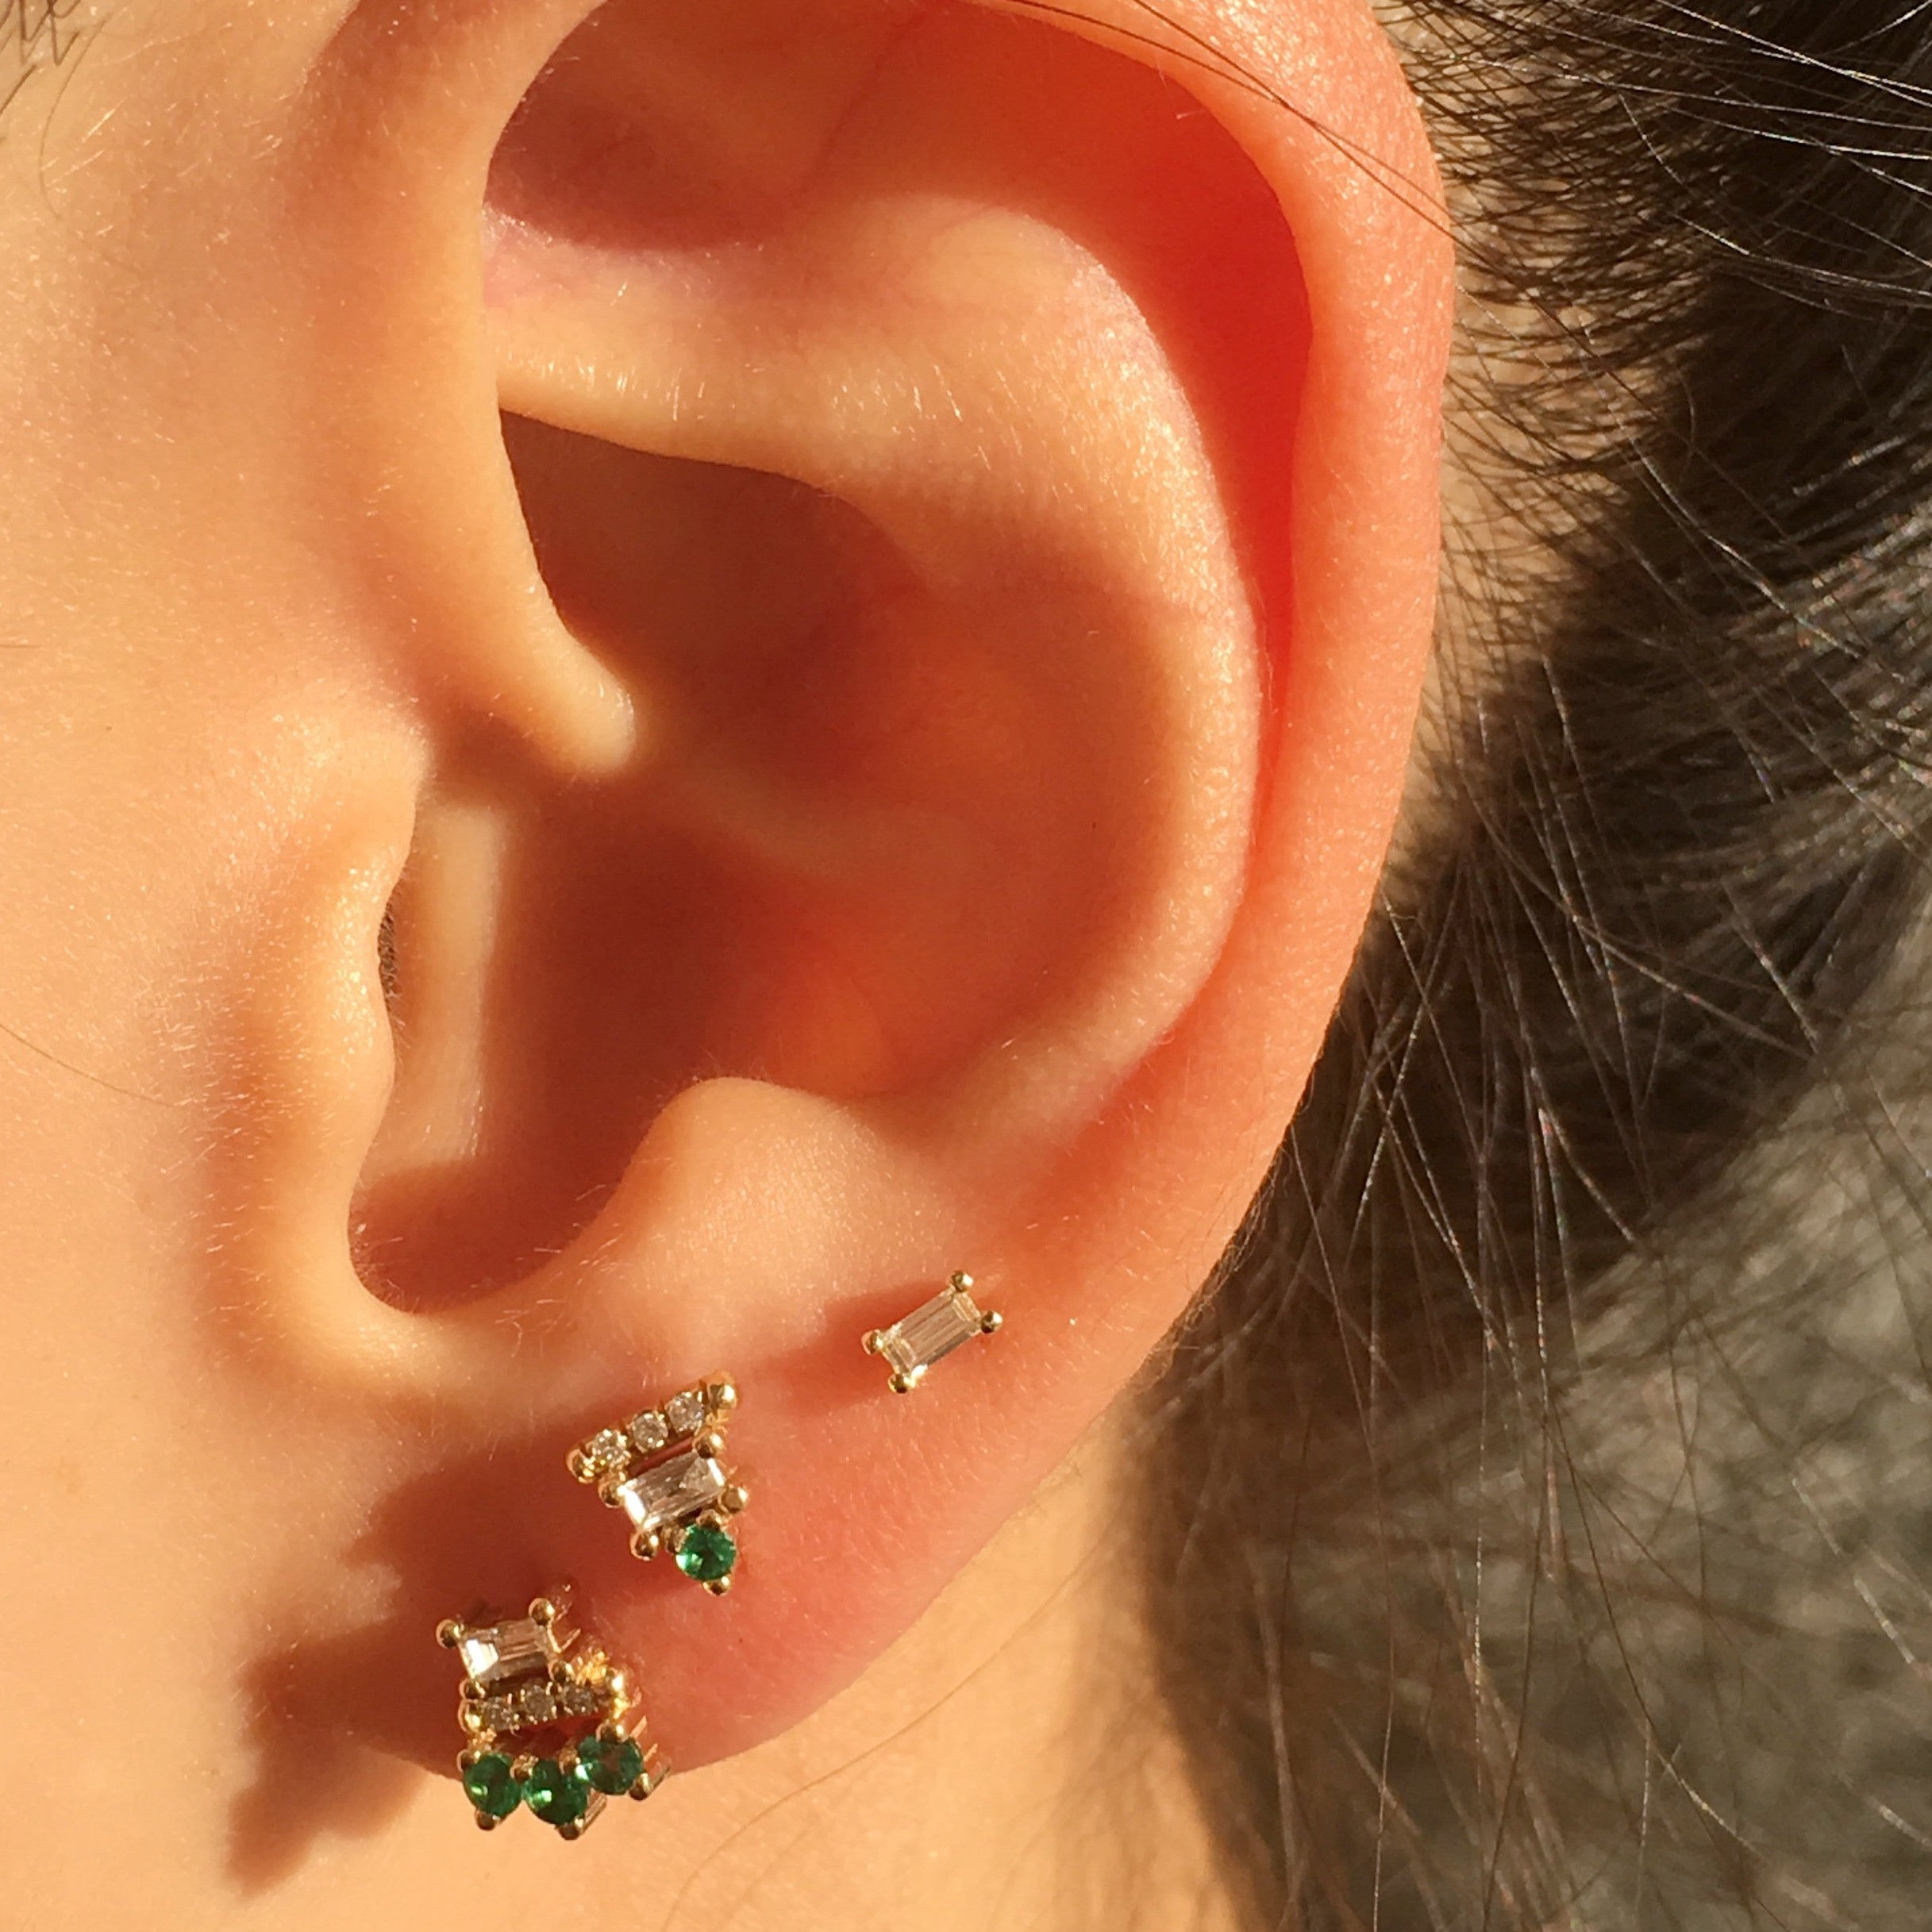 JKD Emerald Lace Stud paired with JKD studs on ear